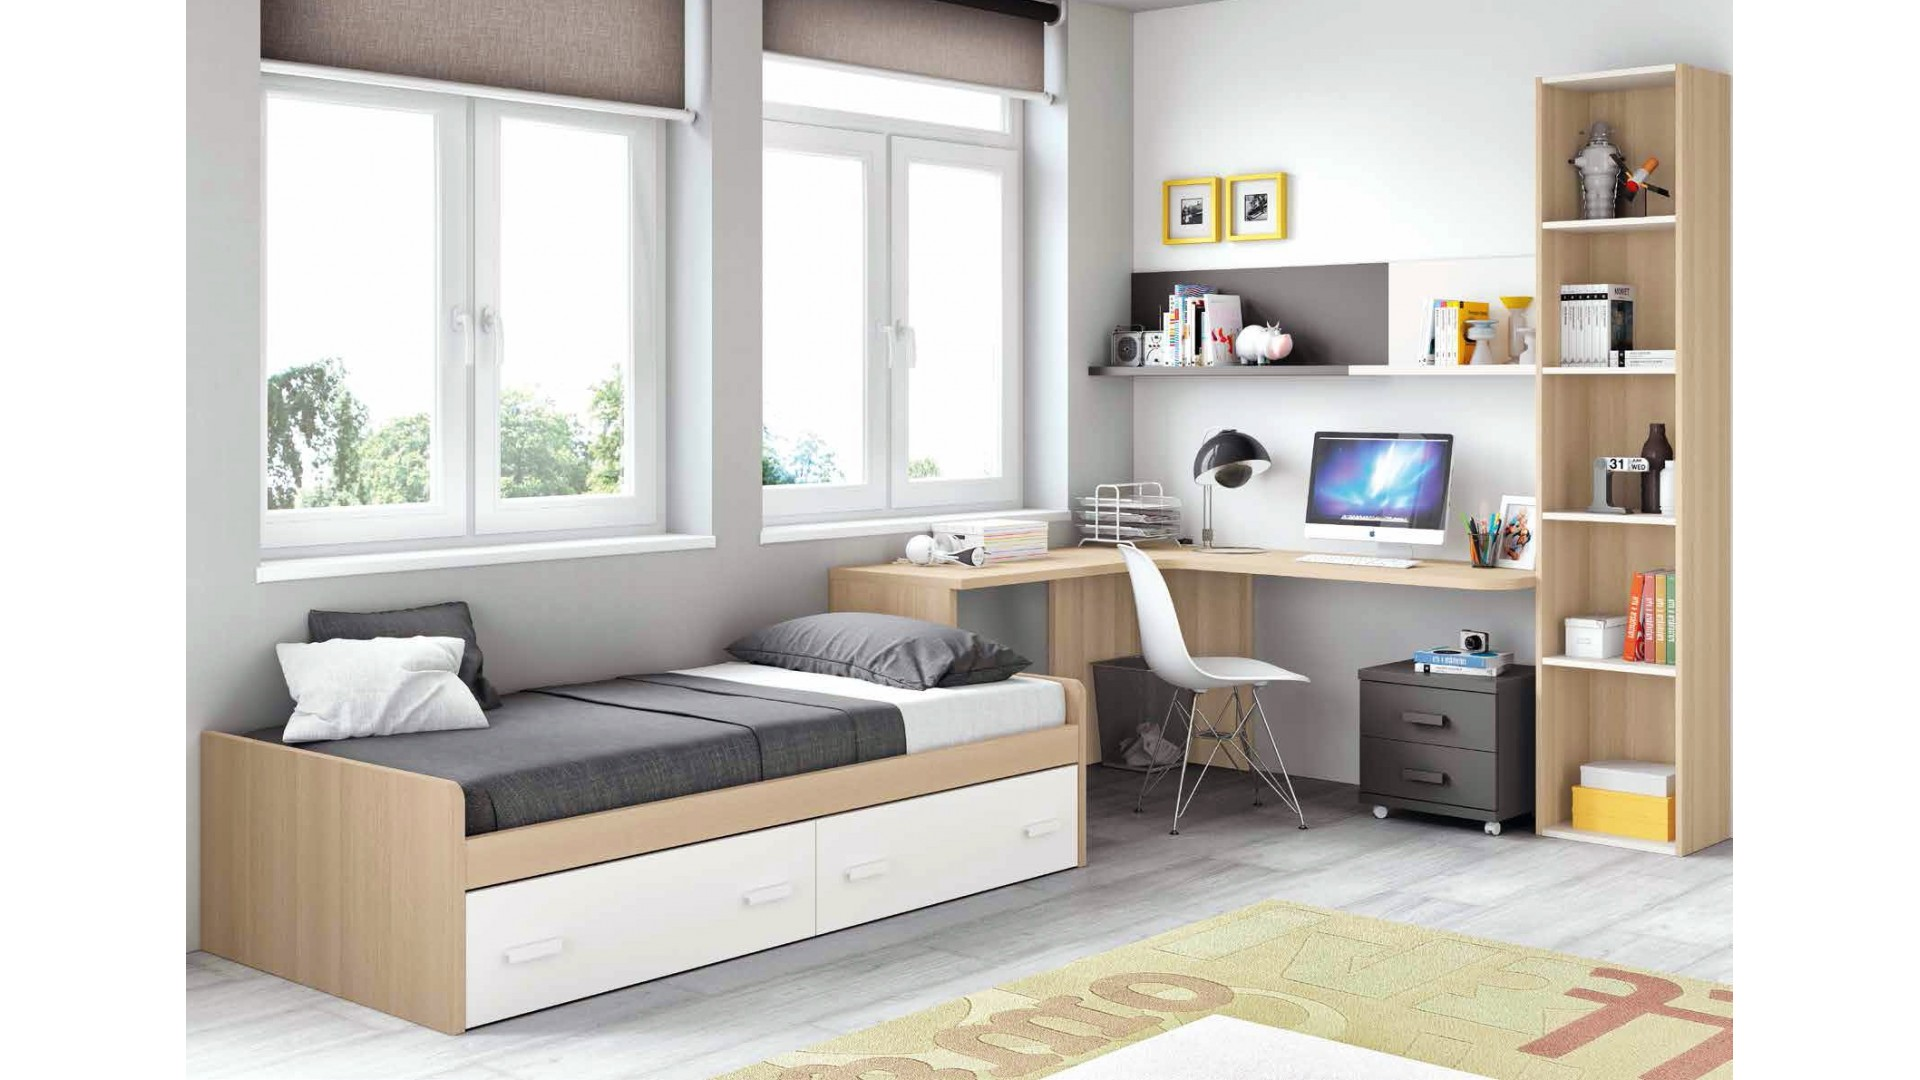 chambre moderne ado et fun avec lit 2 coffres glicerio so nuit. Black Bedroom Furniture Sets. Home Design Ideas